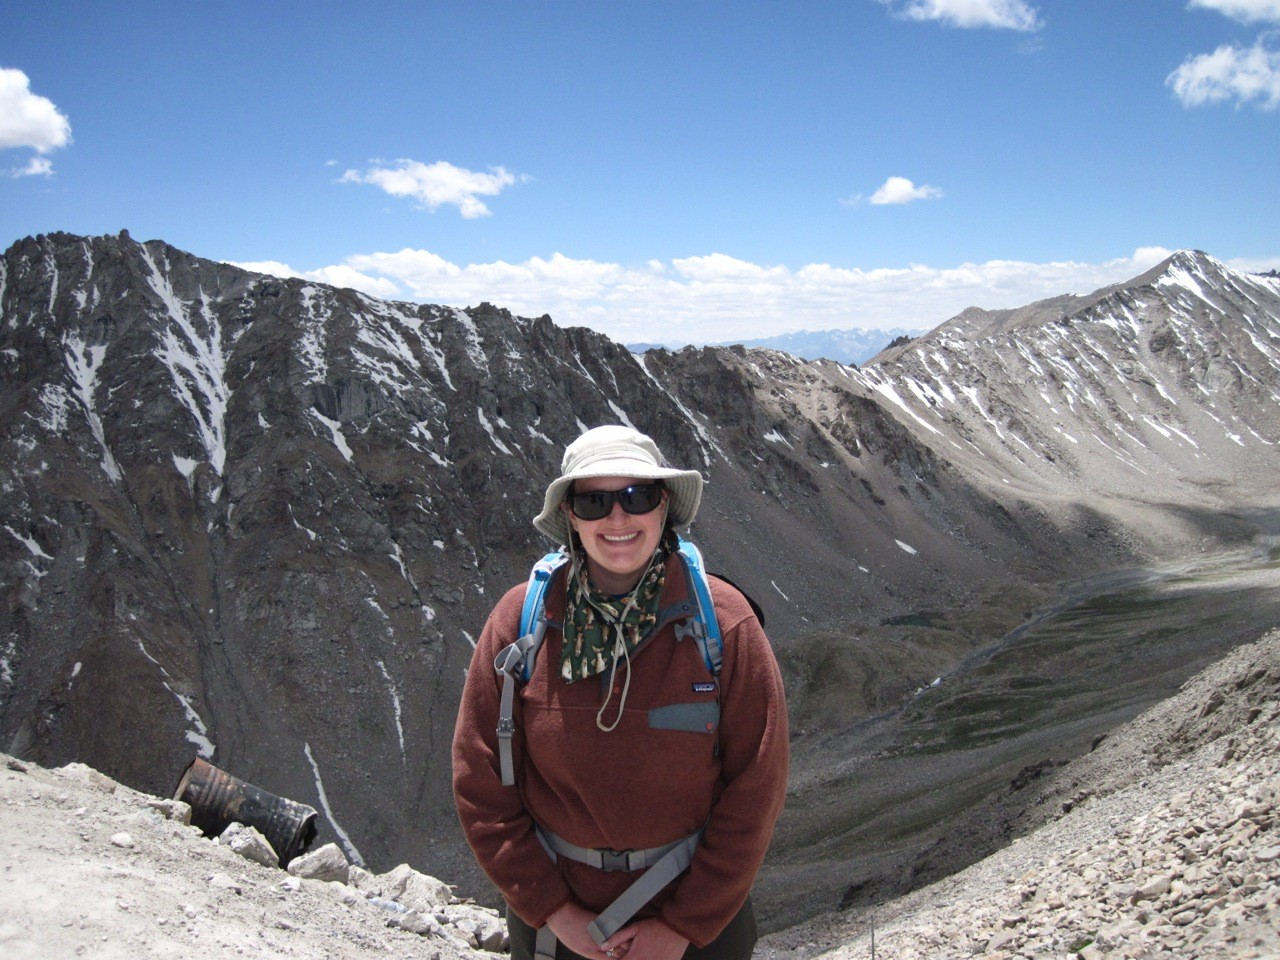 UC assistant professor Brooke Crowley has traveled the world as a geologist and anthropologist.